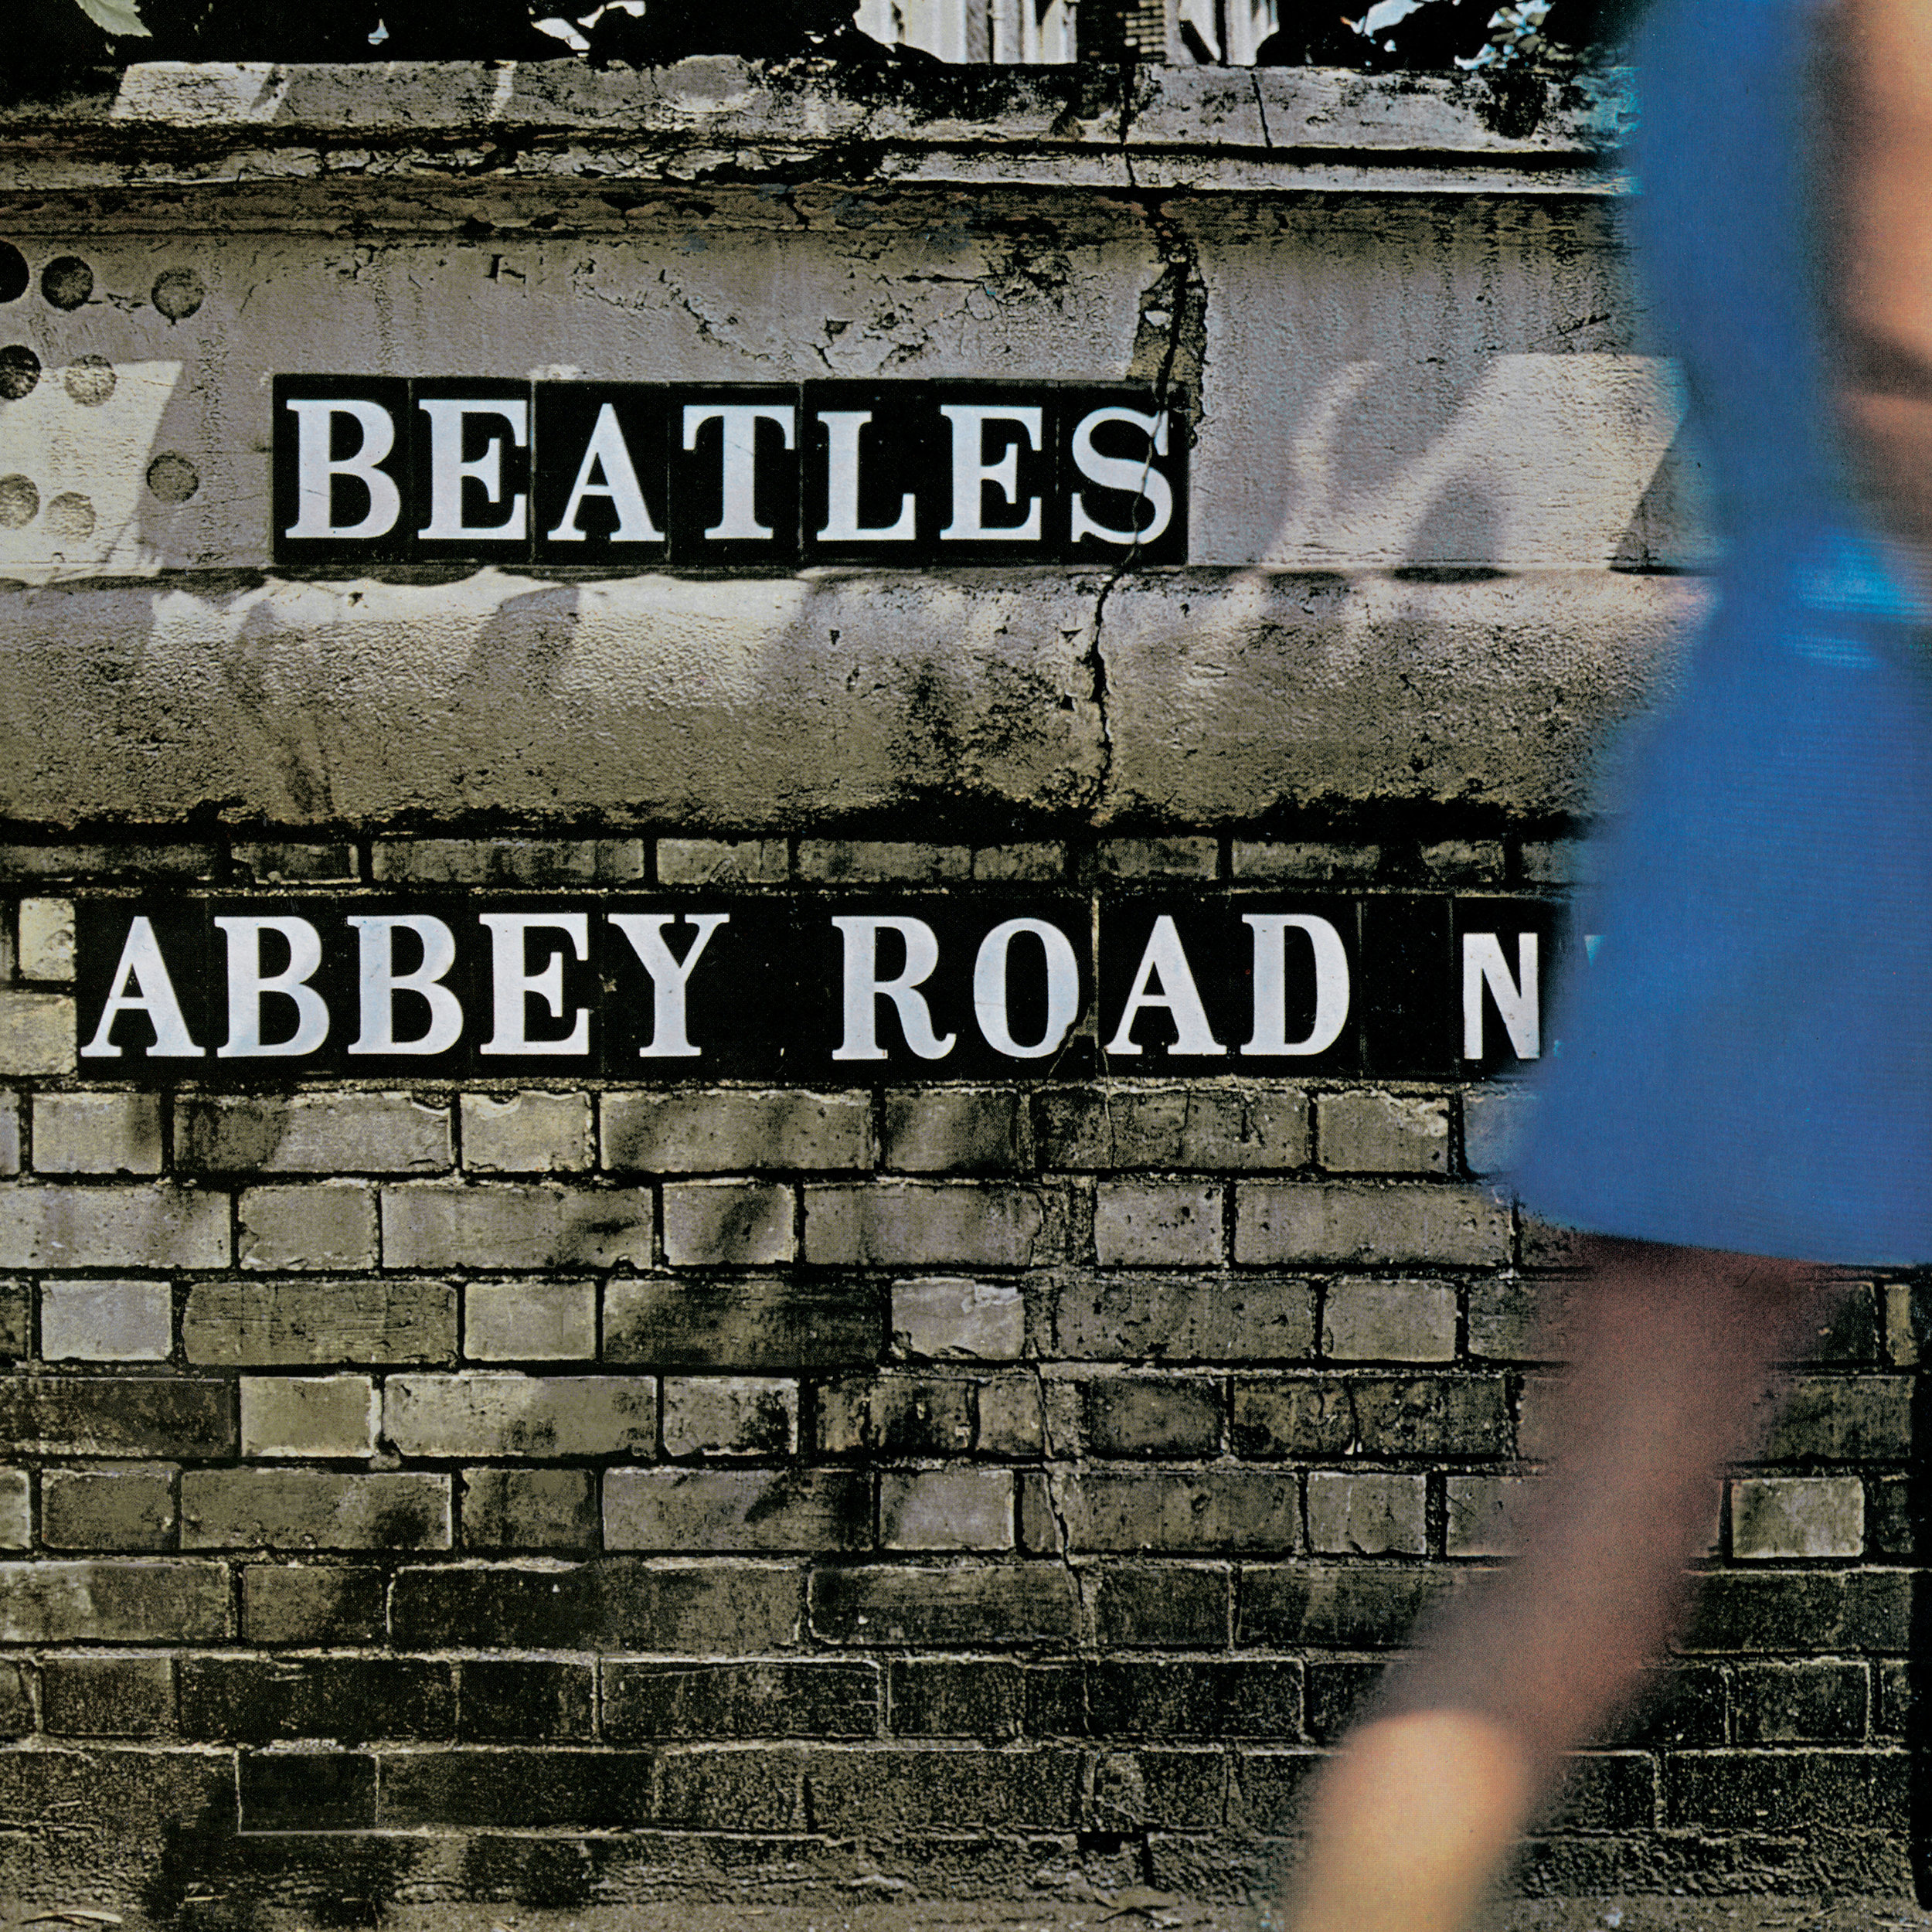 The rear cover artwork for The Beatles 1969 album,  Abbey Road